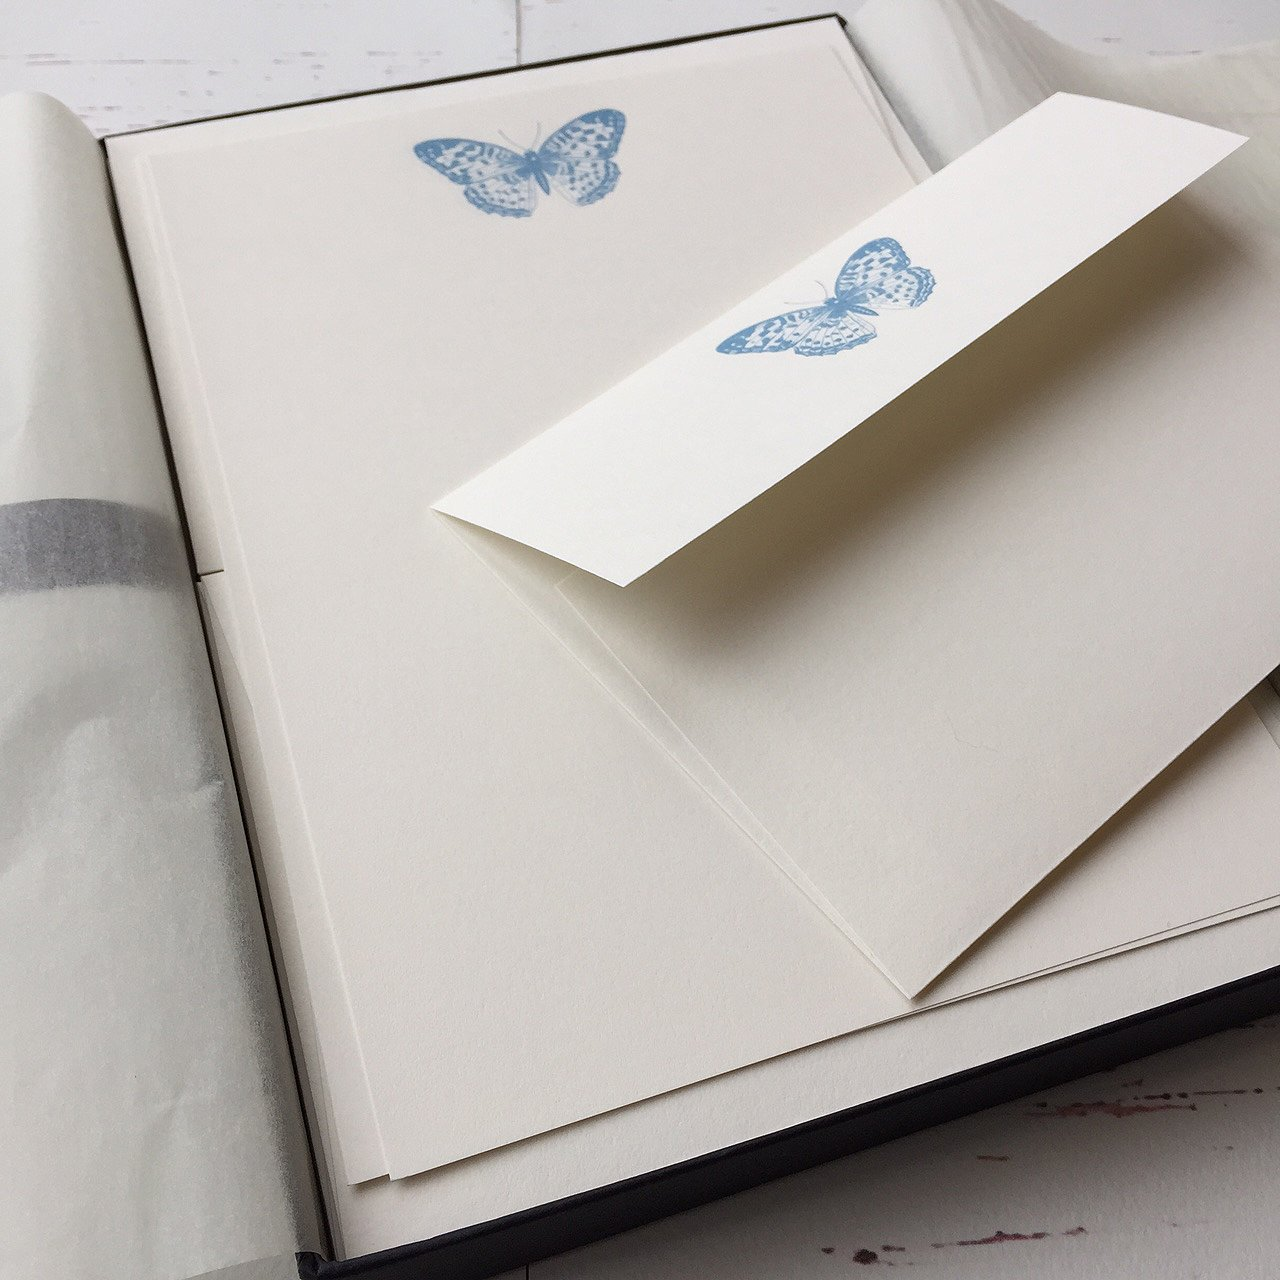 Wagtail Designs Writing Paper Gift Set With Butterfly Design in a lovely black box with ribbon (18)